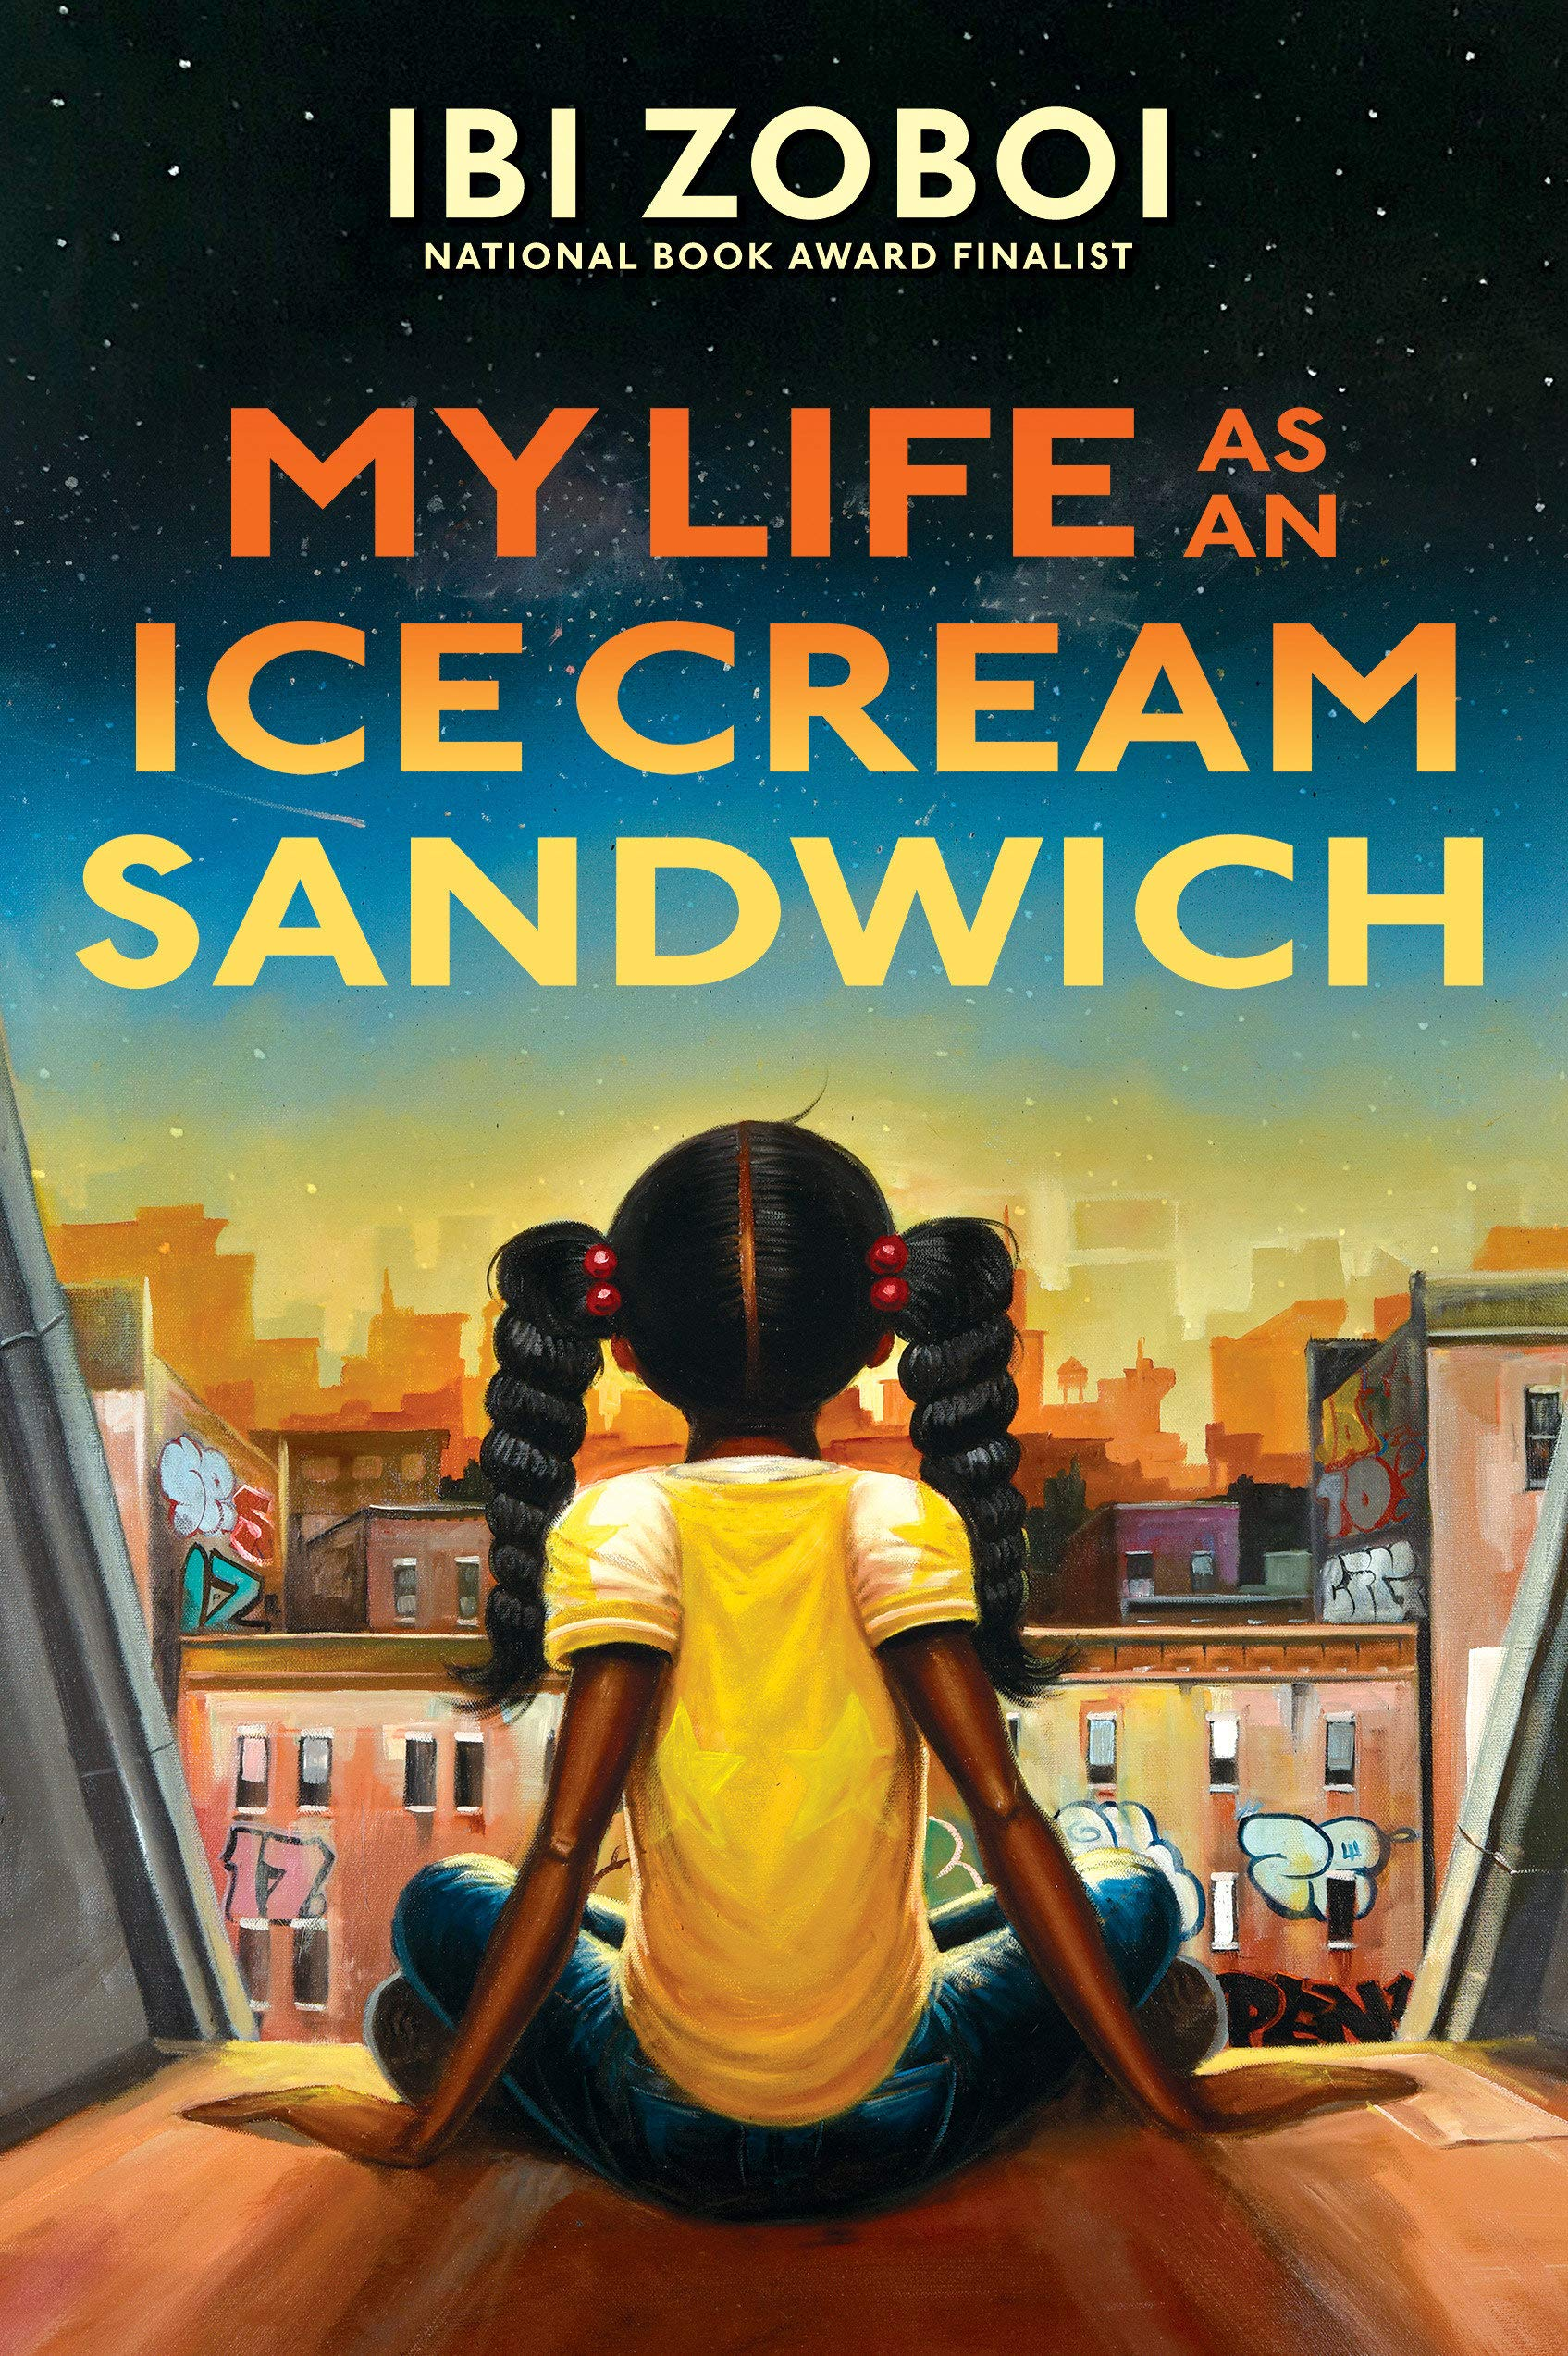 My Life as an Ice Cream Sandwich - Books with Black Protagonists